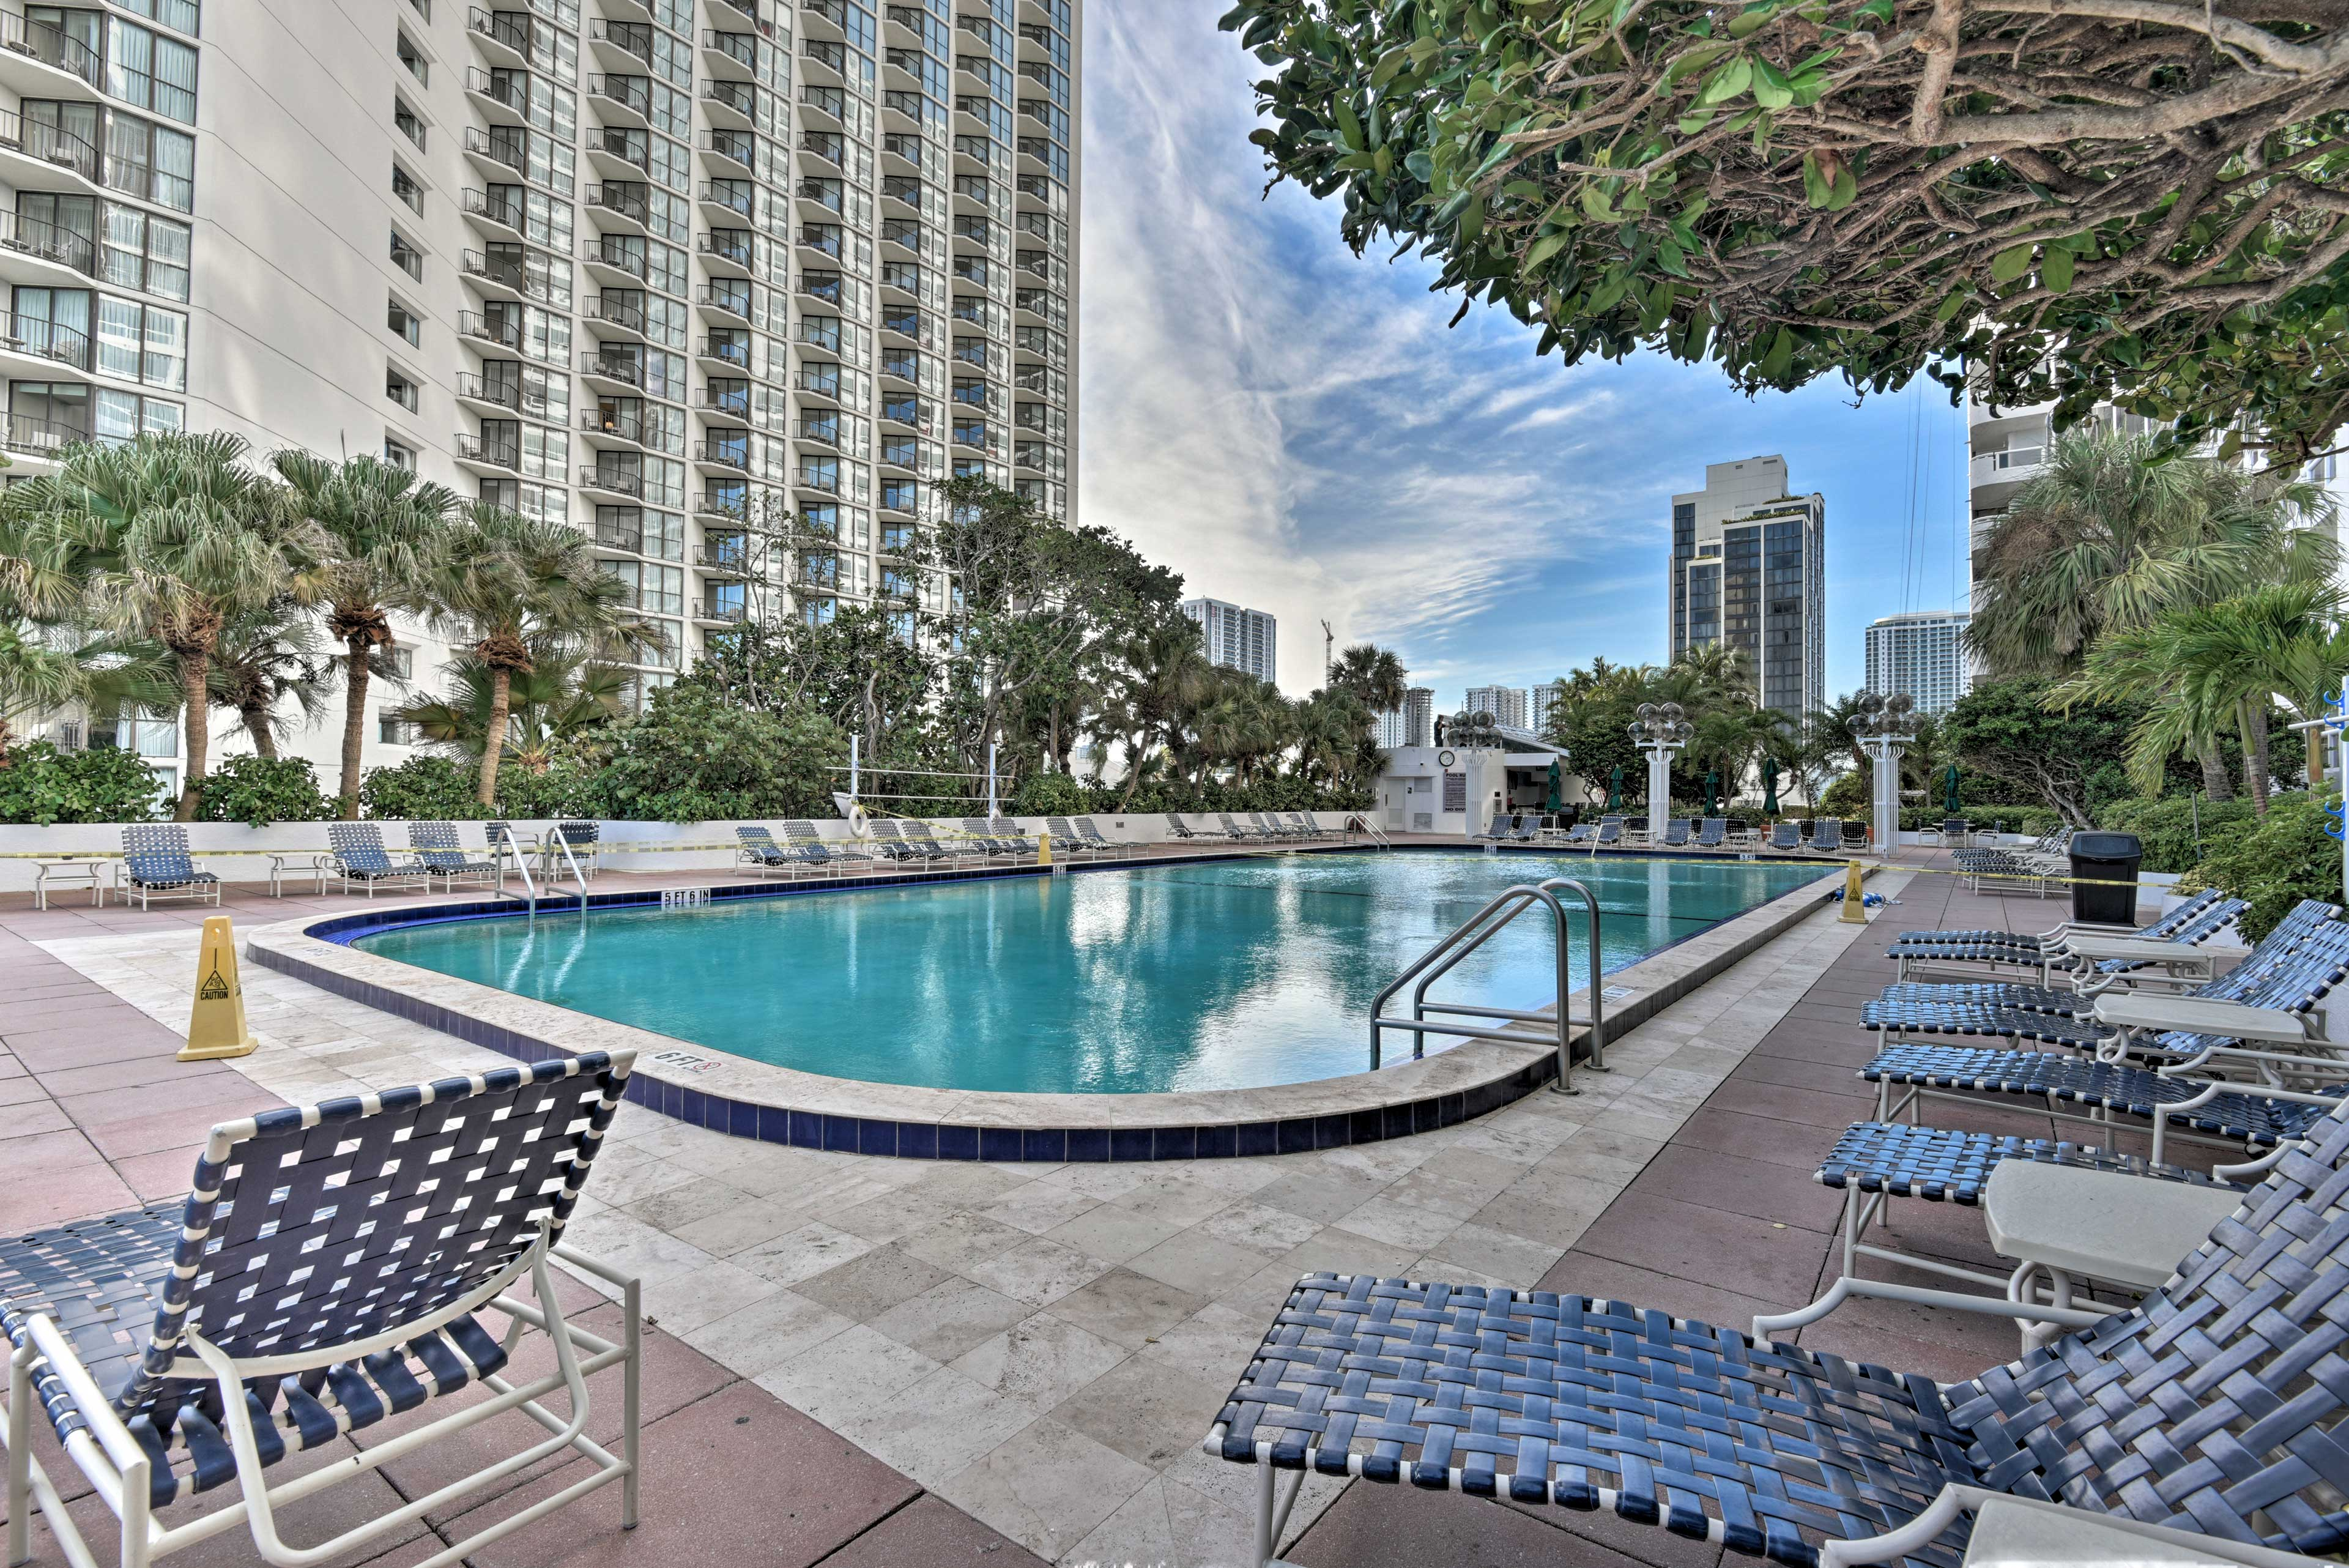 Beat the Miami heat with this large community pool.